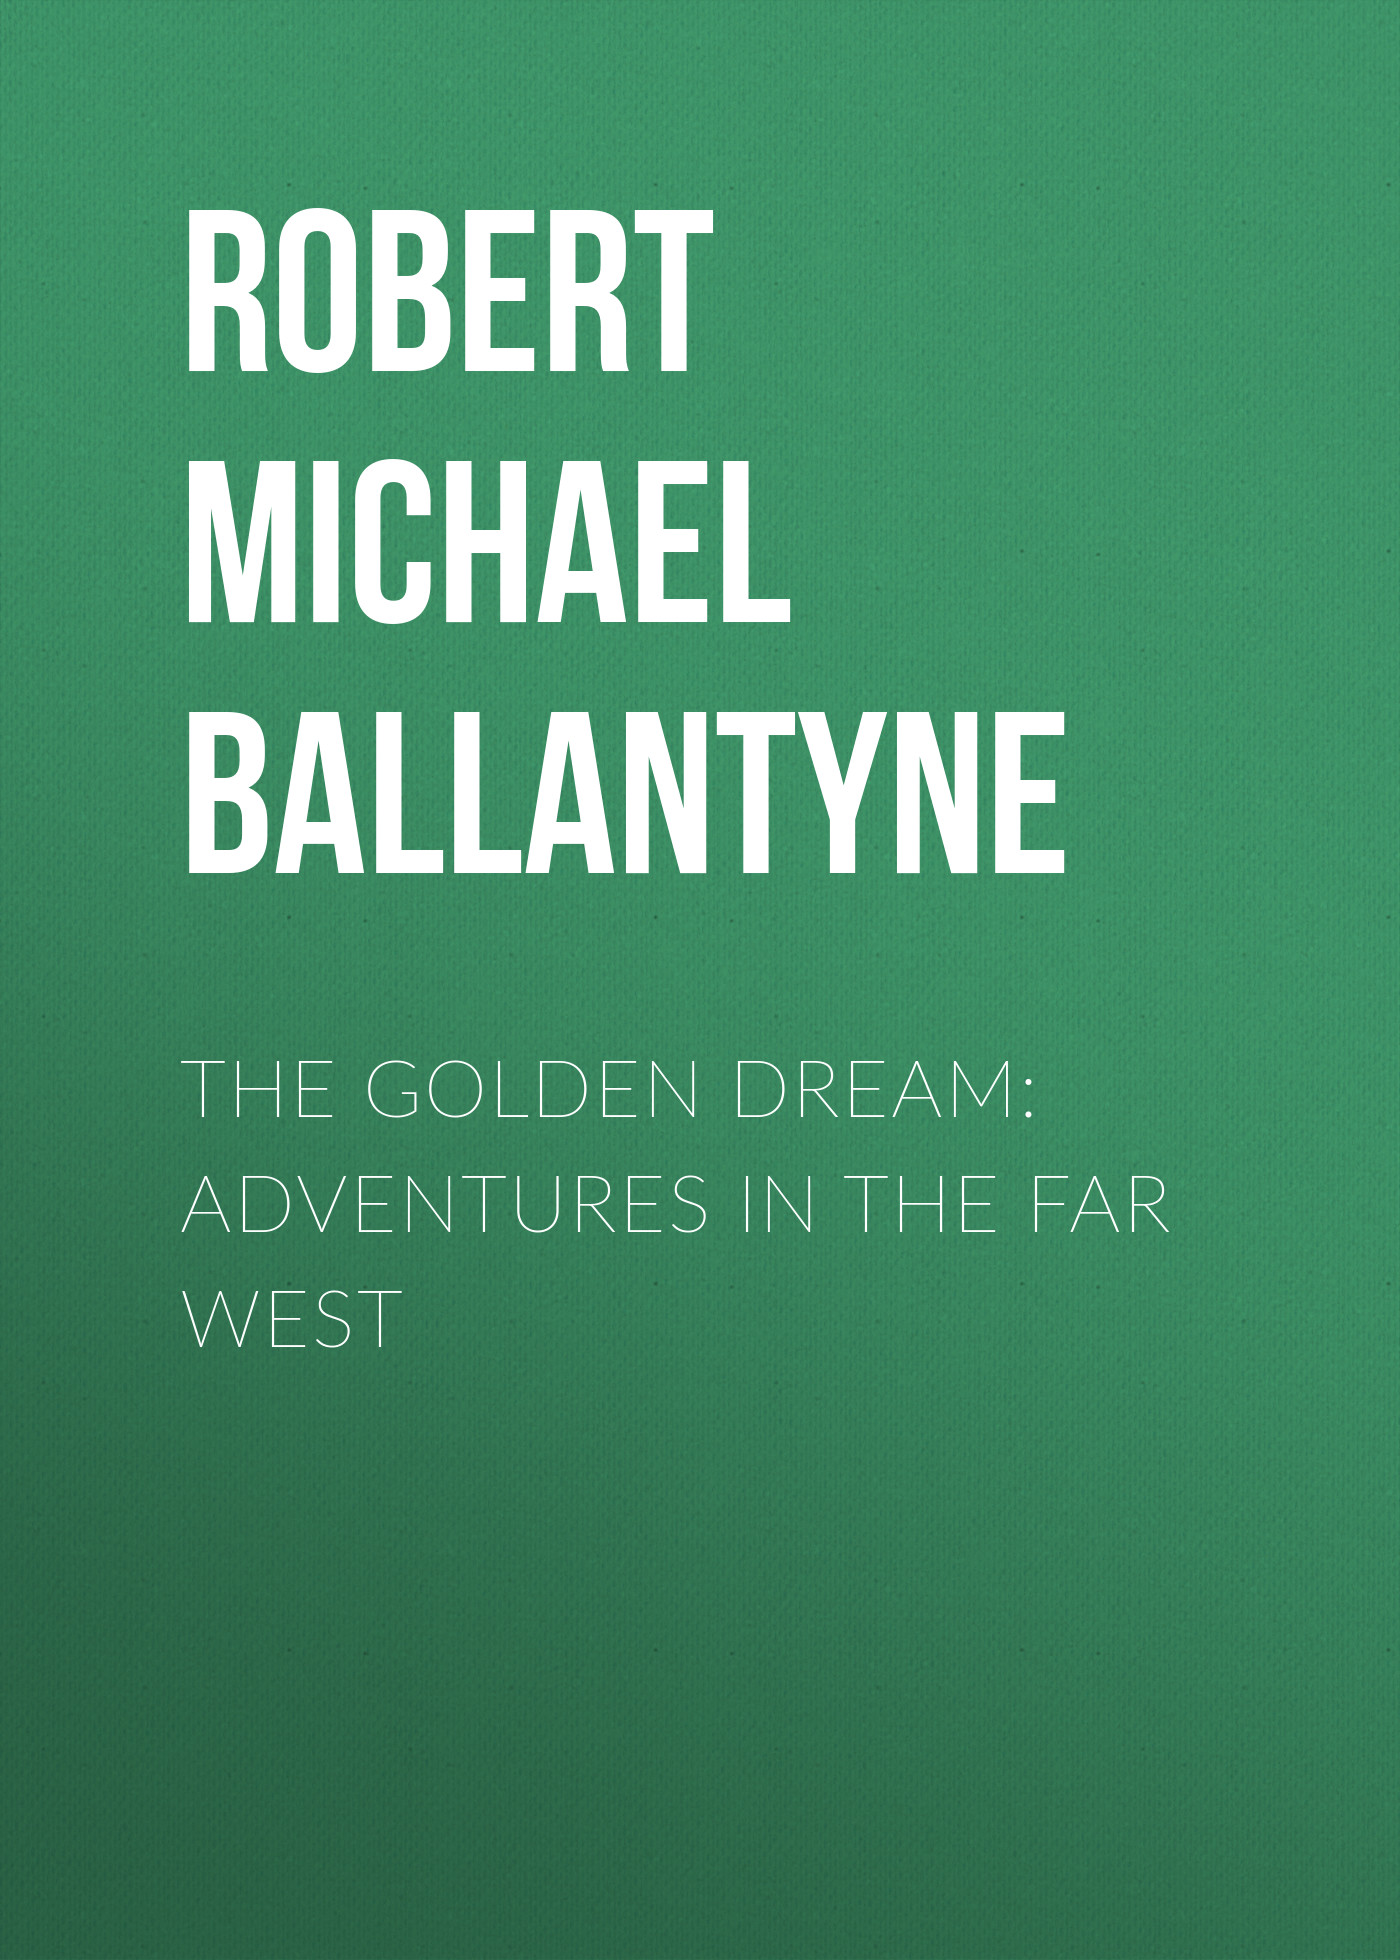 Robert Michael Ballantyne The Golden Dream: Adventures in the Far West gerstaecker frederick wild sports in the far west